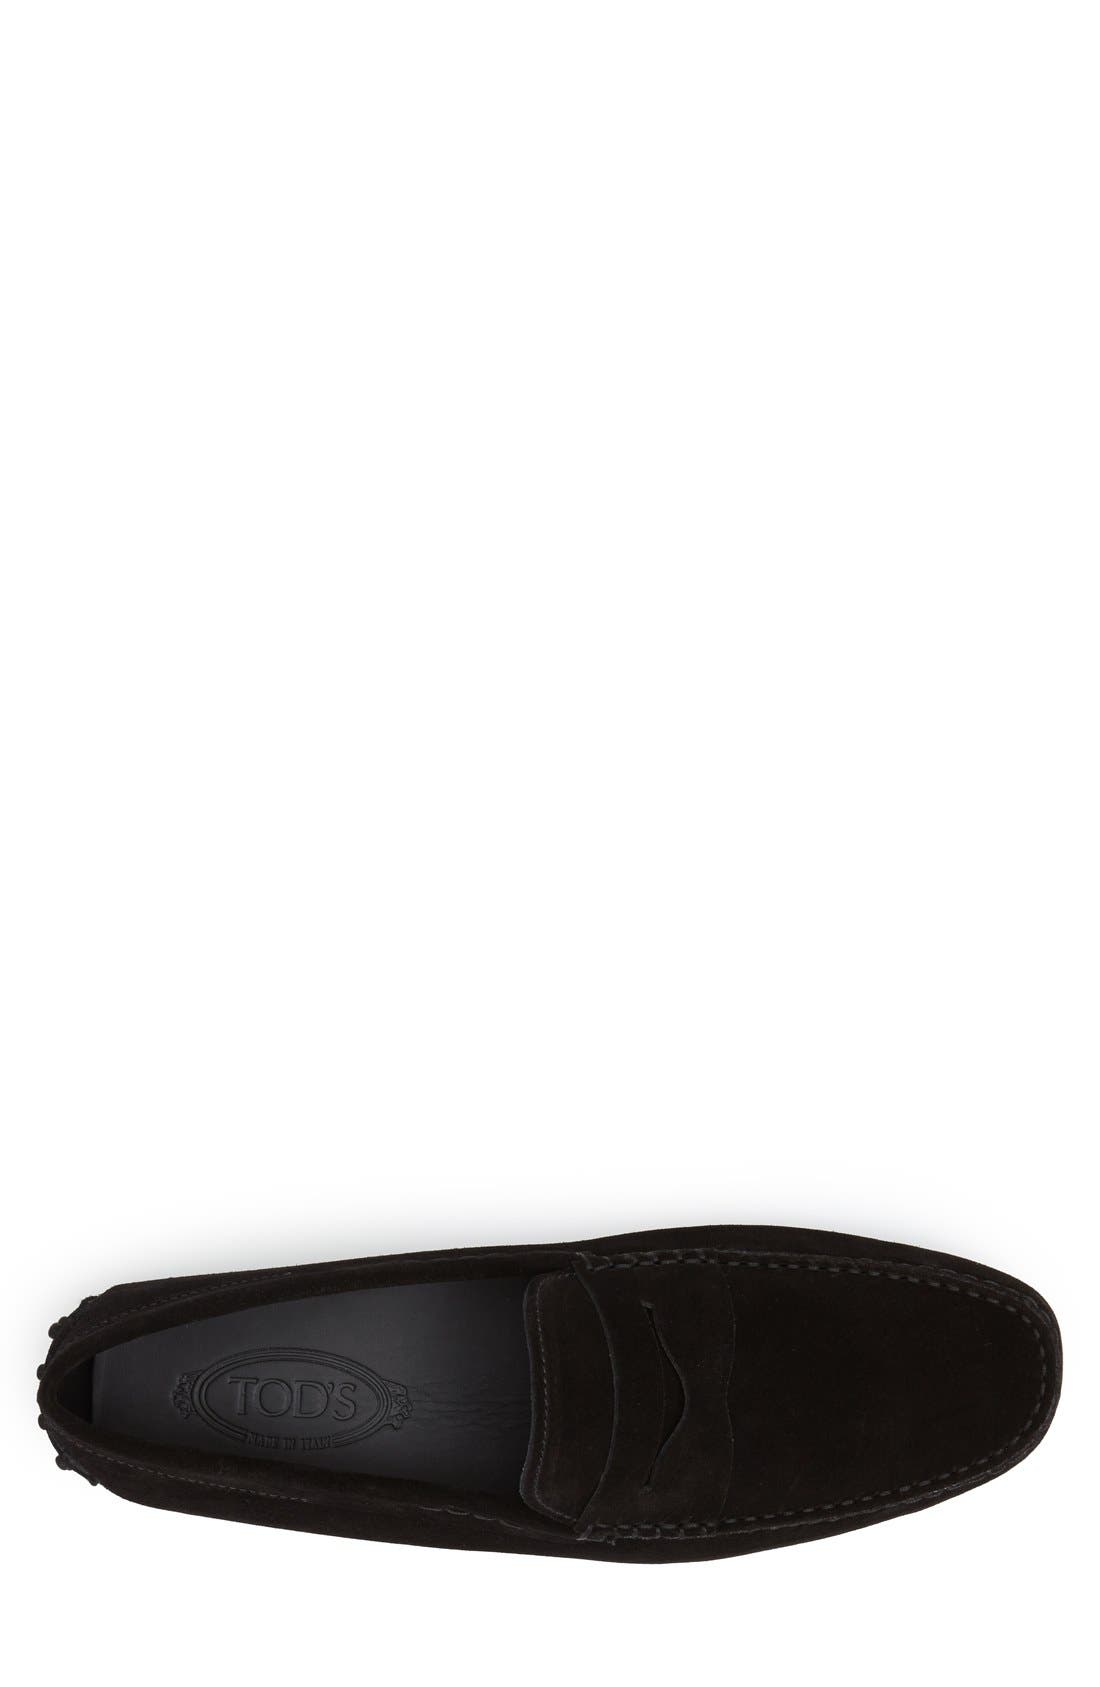 Alternate Image 3  - Tod's 'Gommini' Moccasin